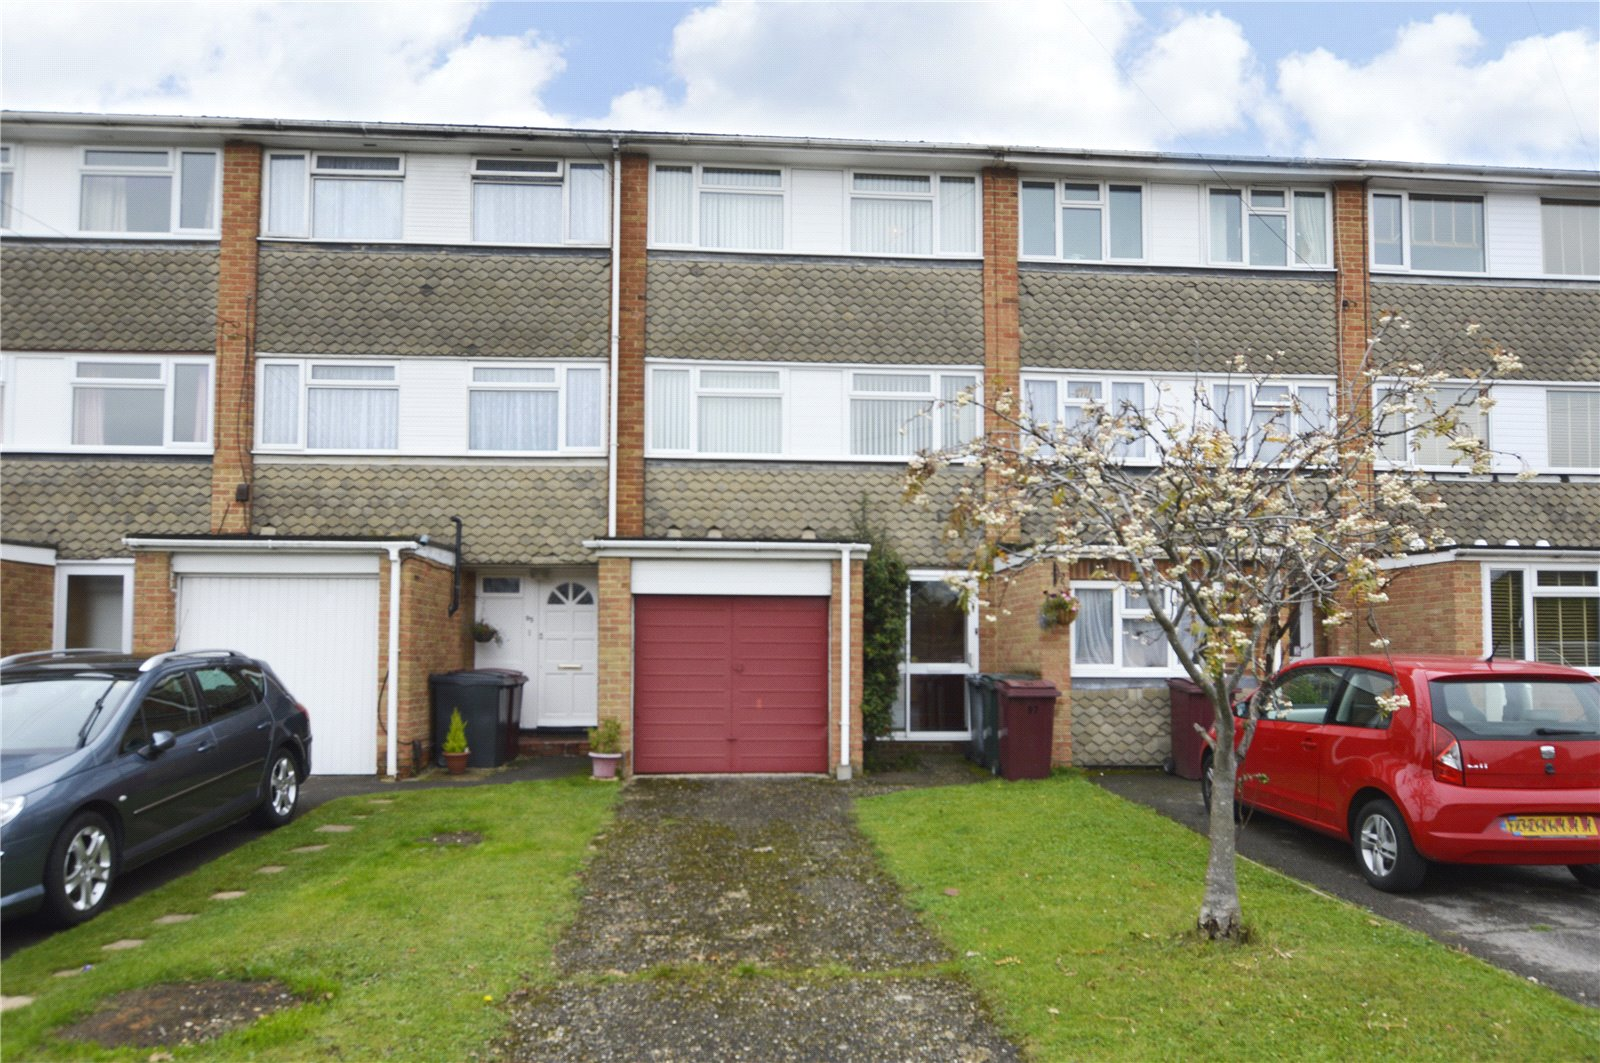 4 Bedrooms Terraced House for sale in Elvaston Way, Tilehurst, Reading, Berkshire, RG30